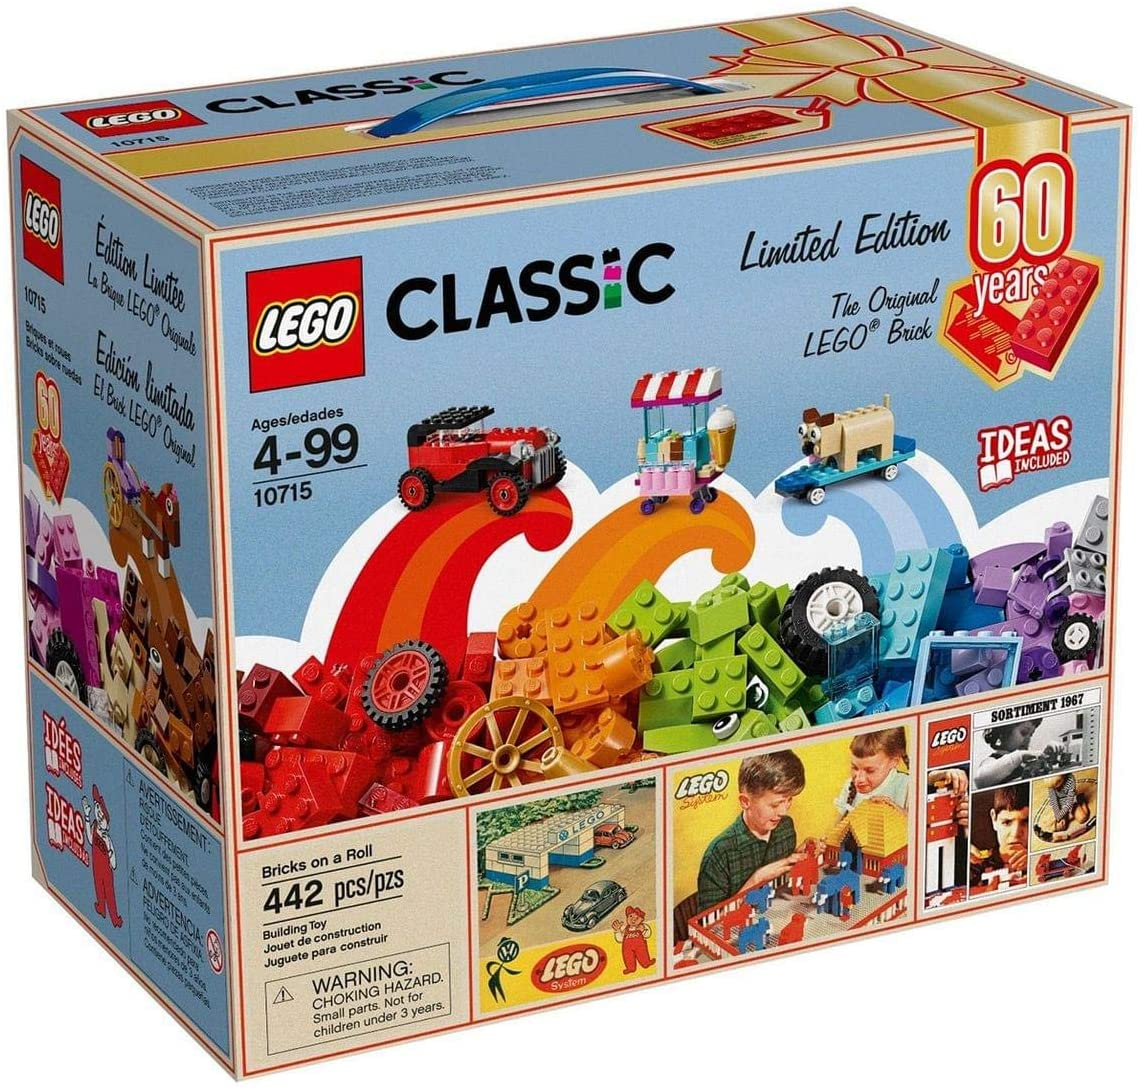 LEGO Classic Bricks On A Roll 442-Piece Building Kit - 60th Anniversary Limited Edition: Amazon.es: Juguetes y juegos